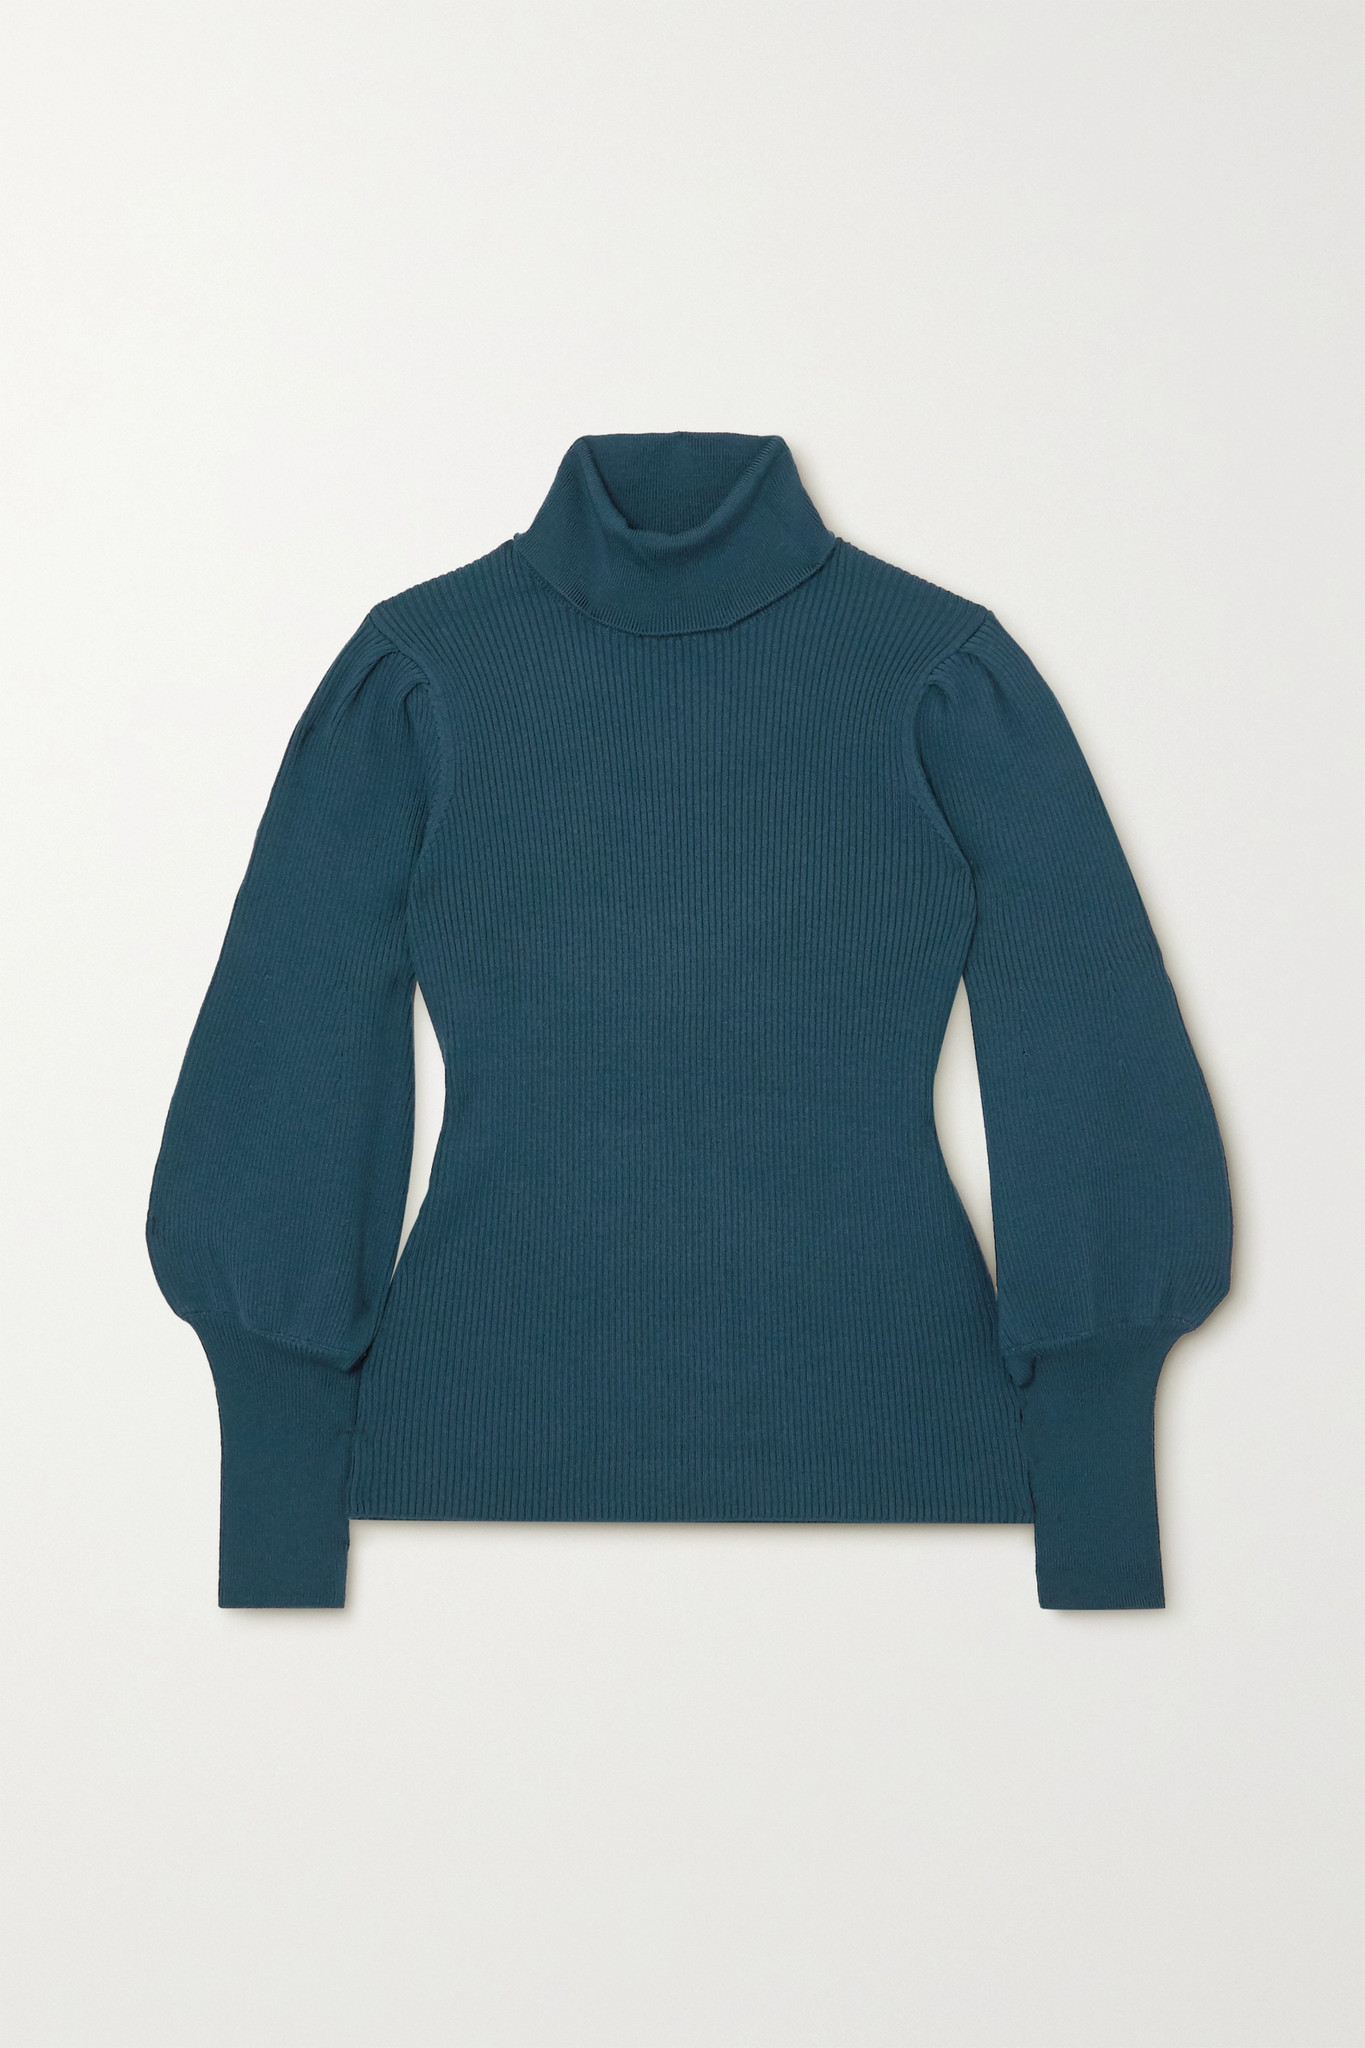 CEFINN - Eva Ribbed Wool-blend Turtleneck Sweater - Blue - large